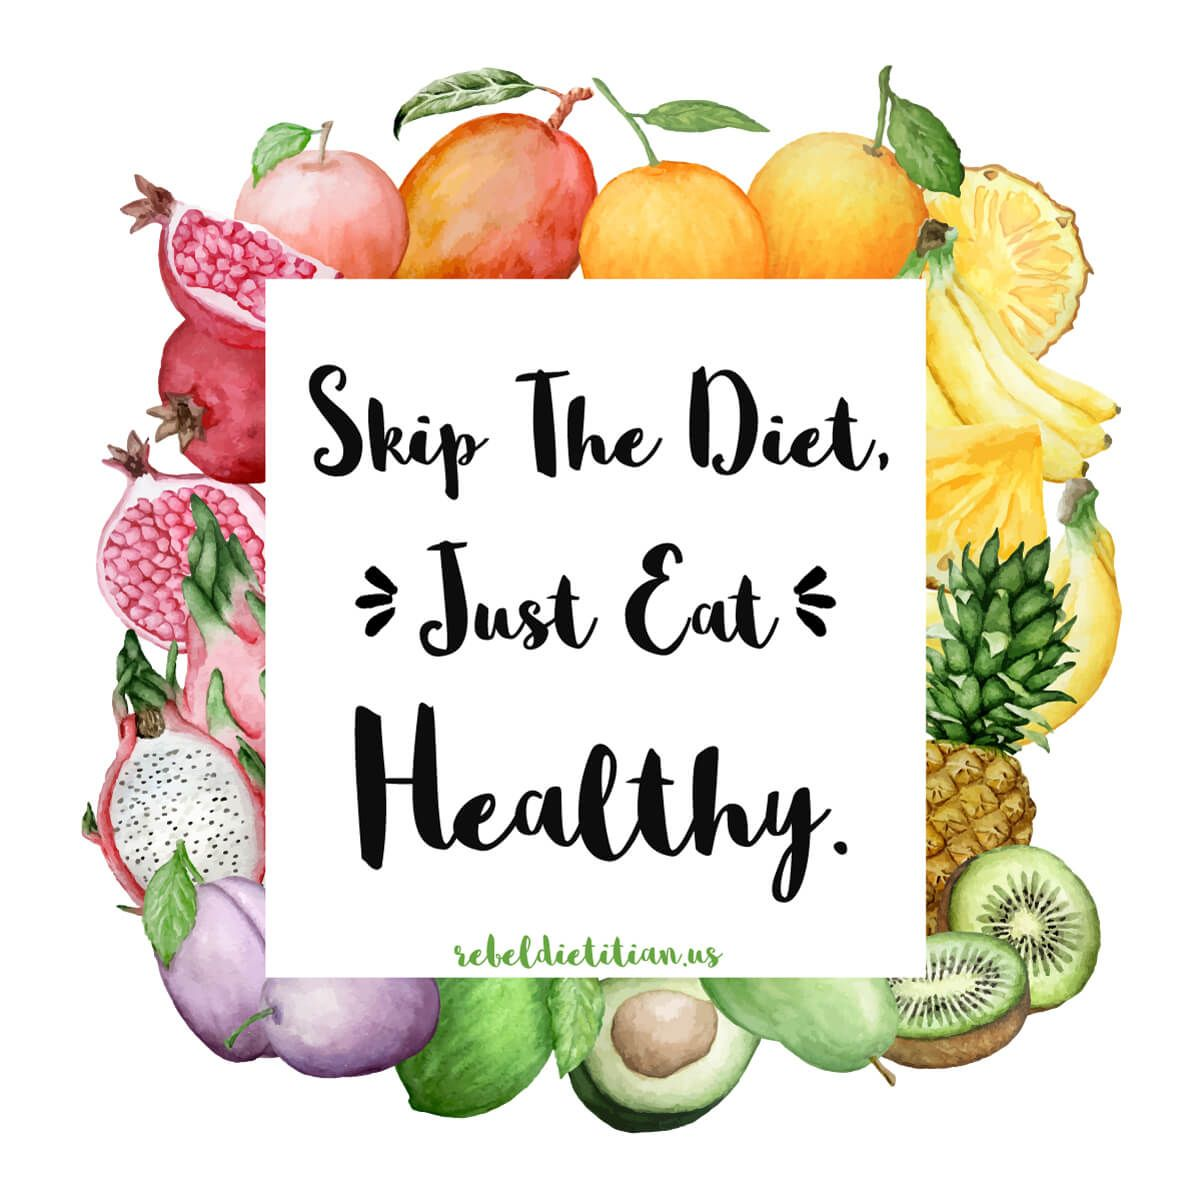 Skip the Diet, Just Eat Healthy! Healthy food quotes